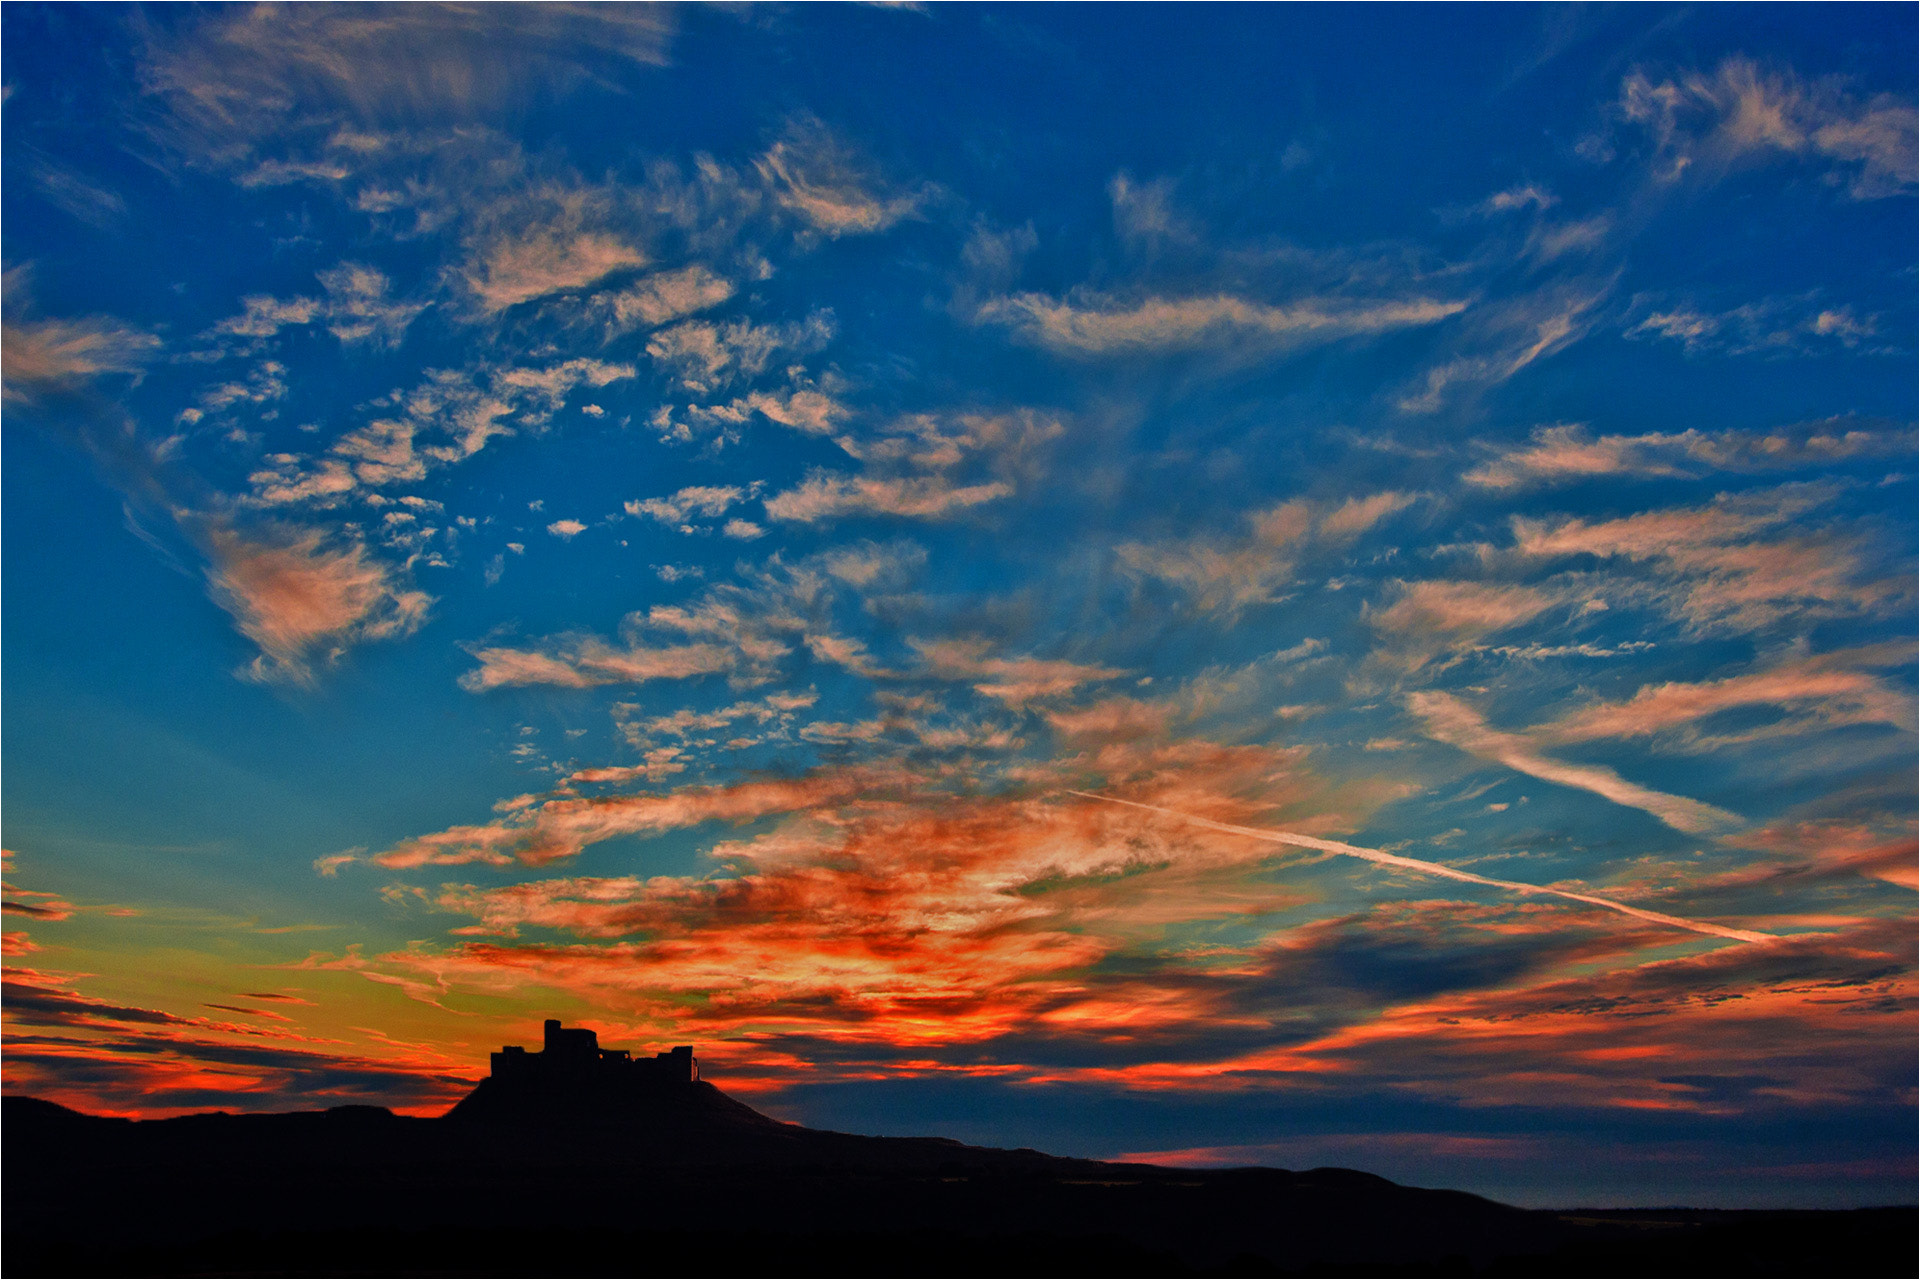 Photograph Montearagón Ocaso (Huesca) by Ferran Cartagena  on 500px